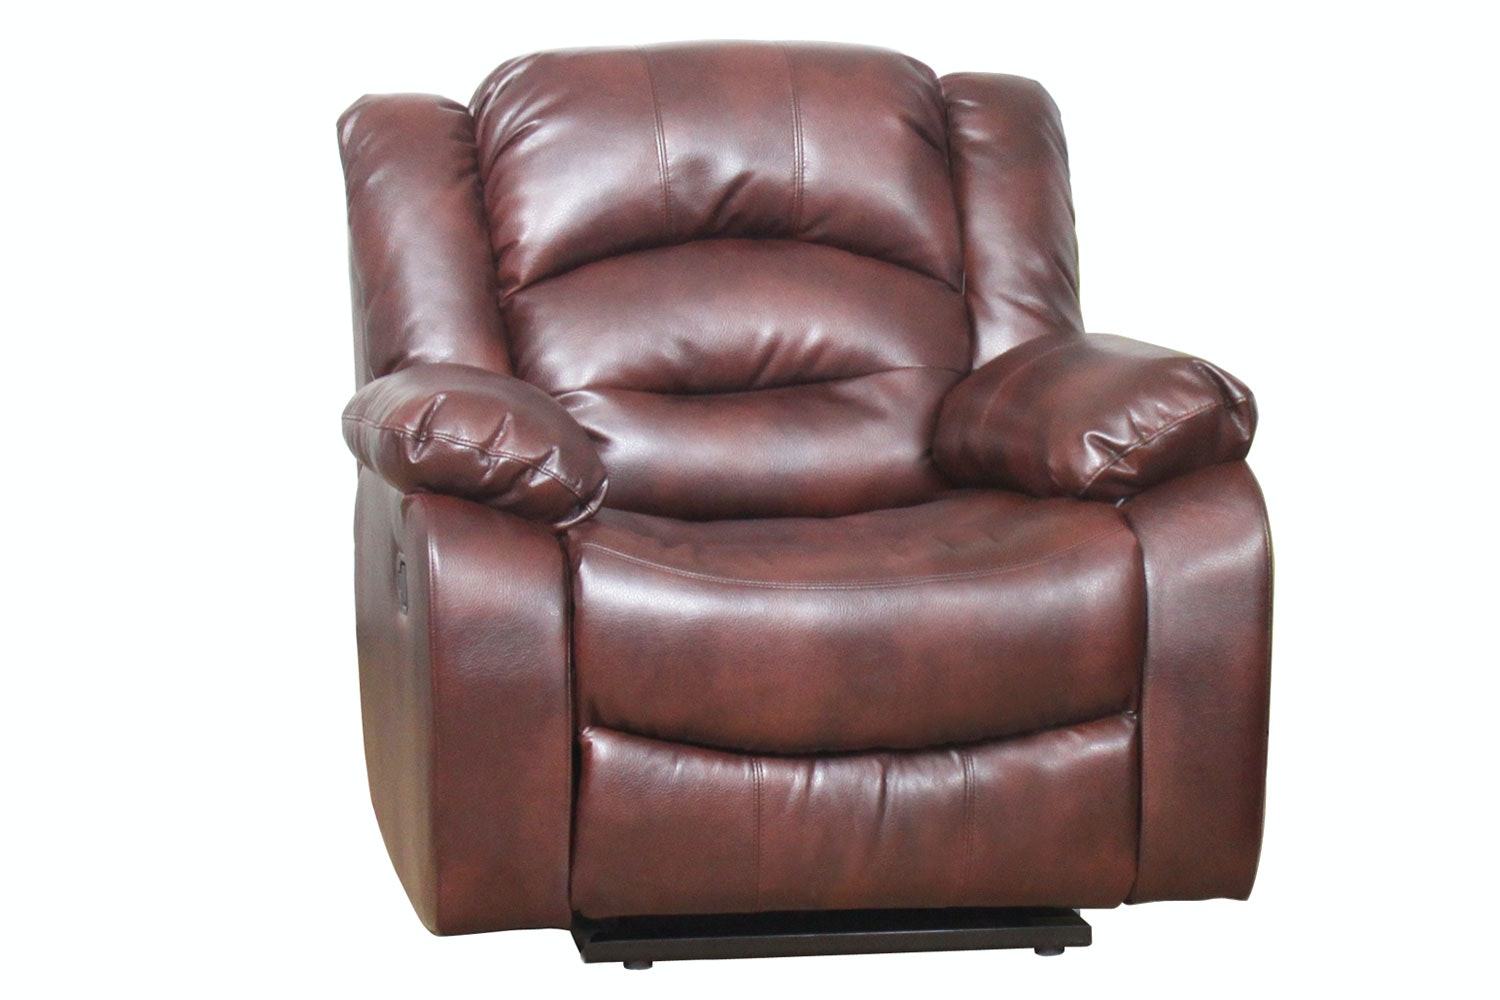 Naples Recliner Chair